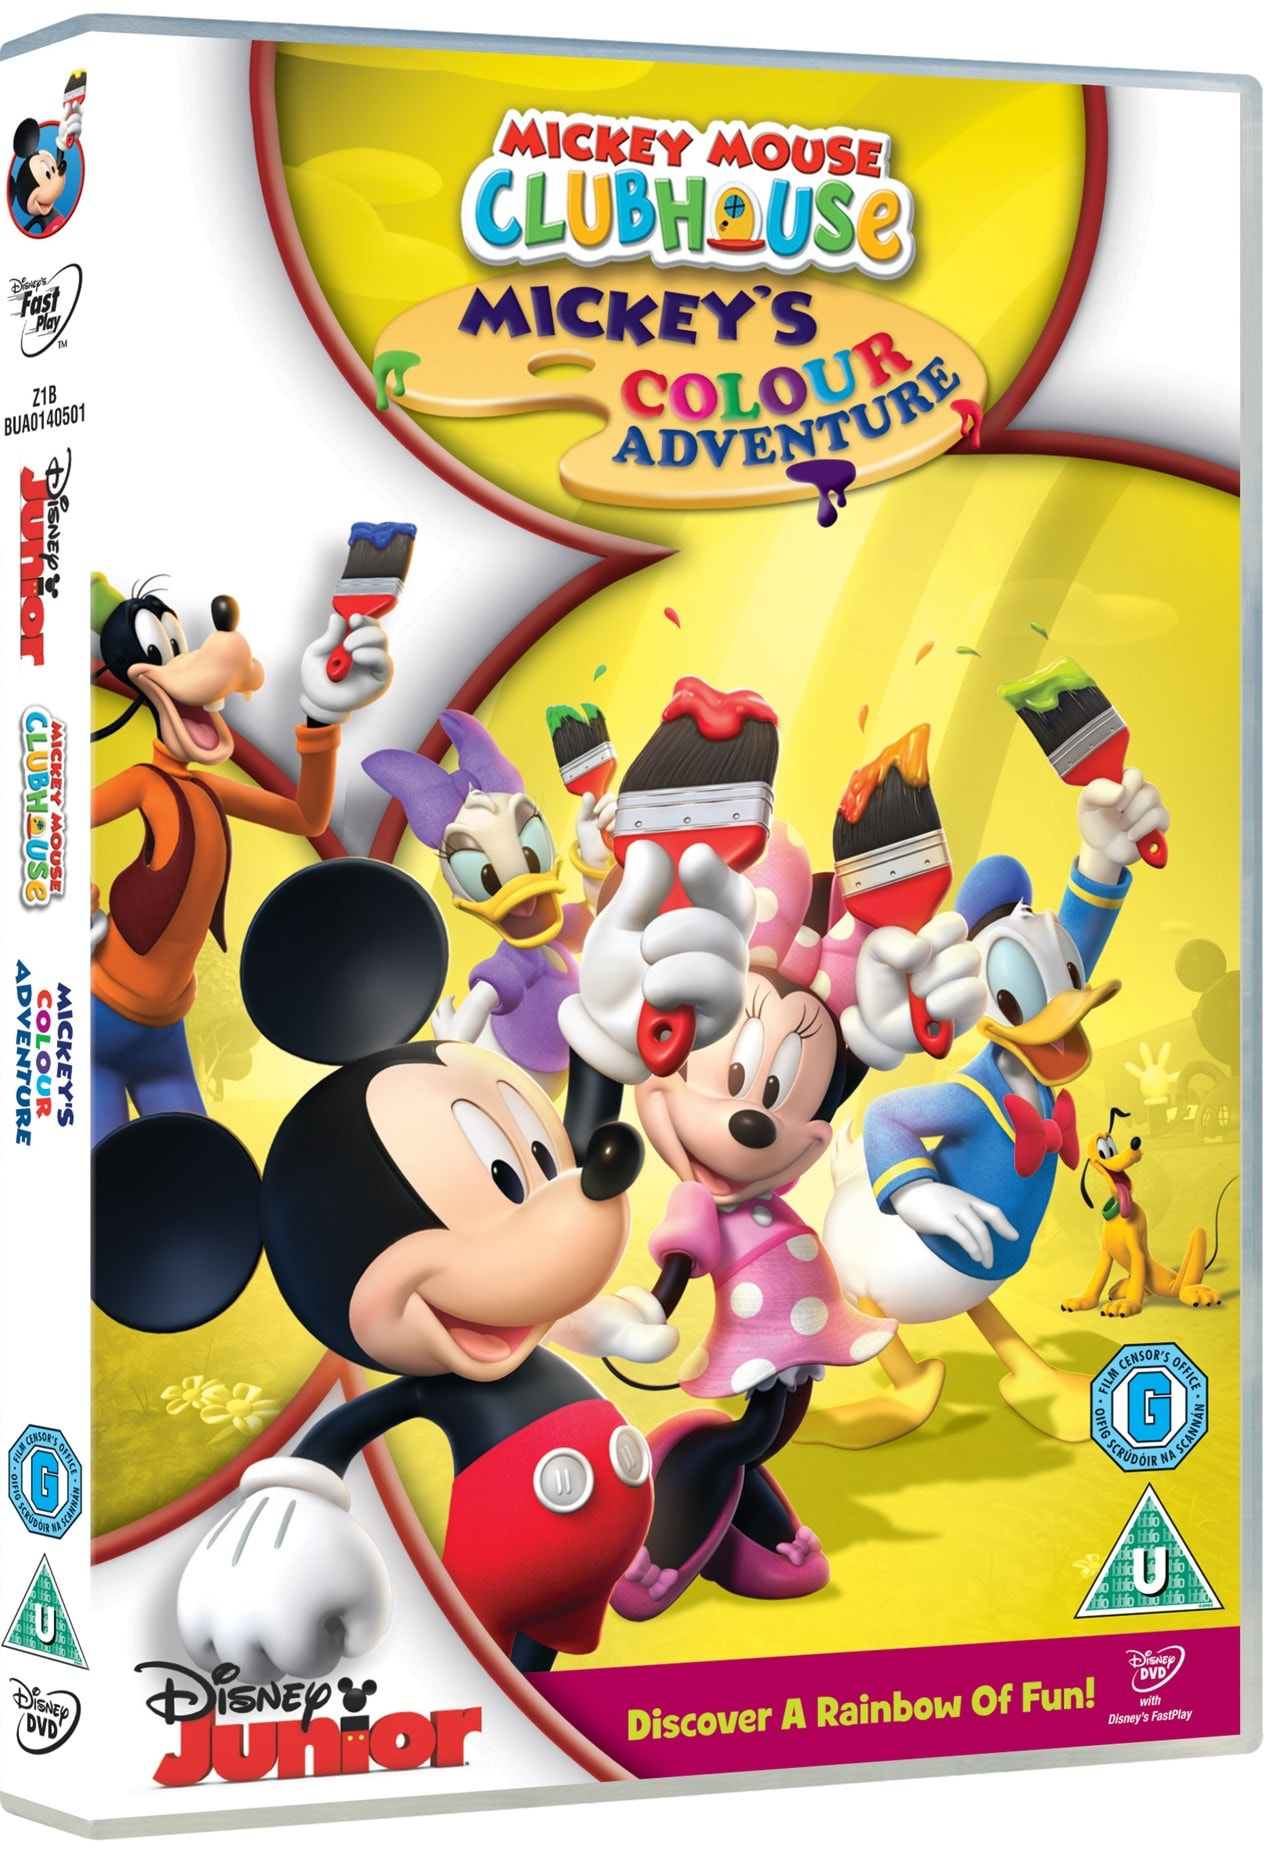 Mickey Mouse Clubhouse: Mickey's Colour Adventure | DVD ...